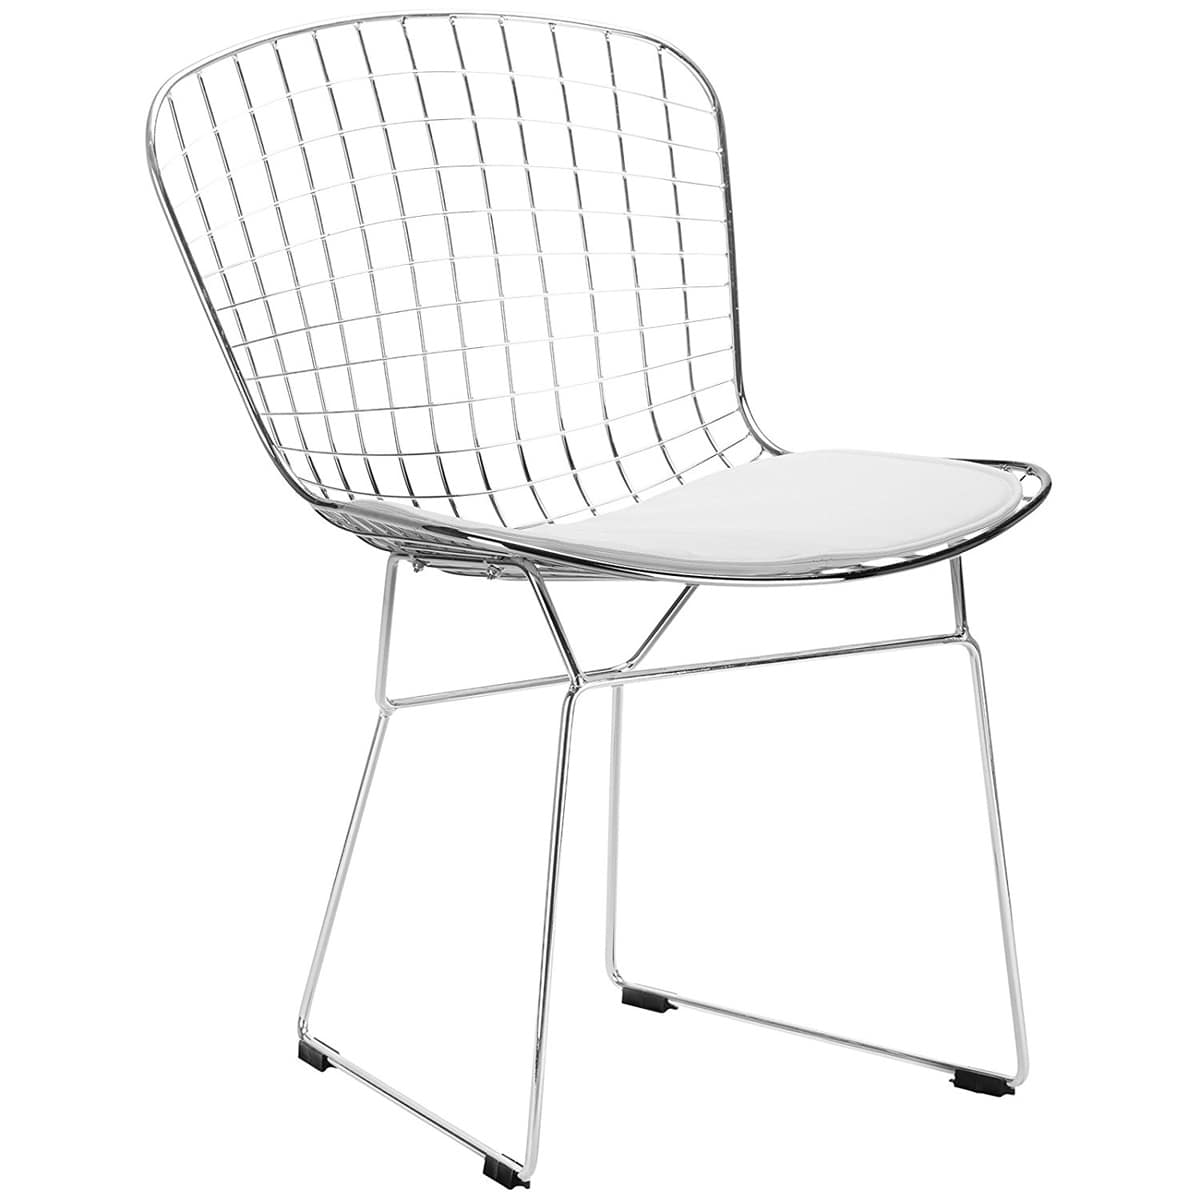 The Most Beautiful Kitchen Chairs You Can Buy on Amazon for $100 or Less: gallery image 8